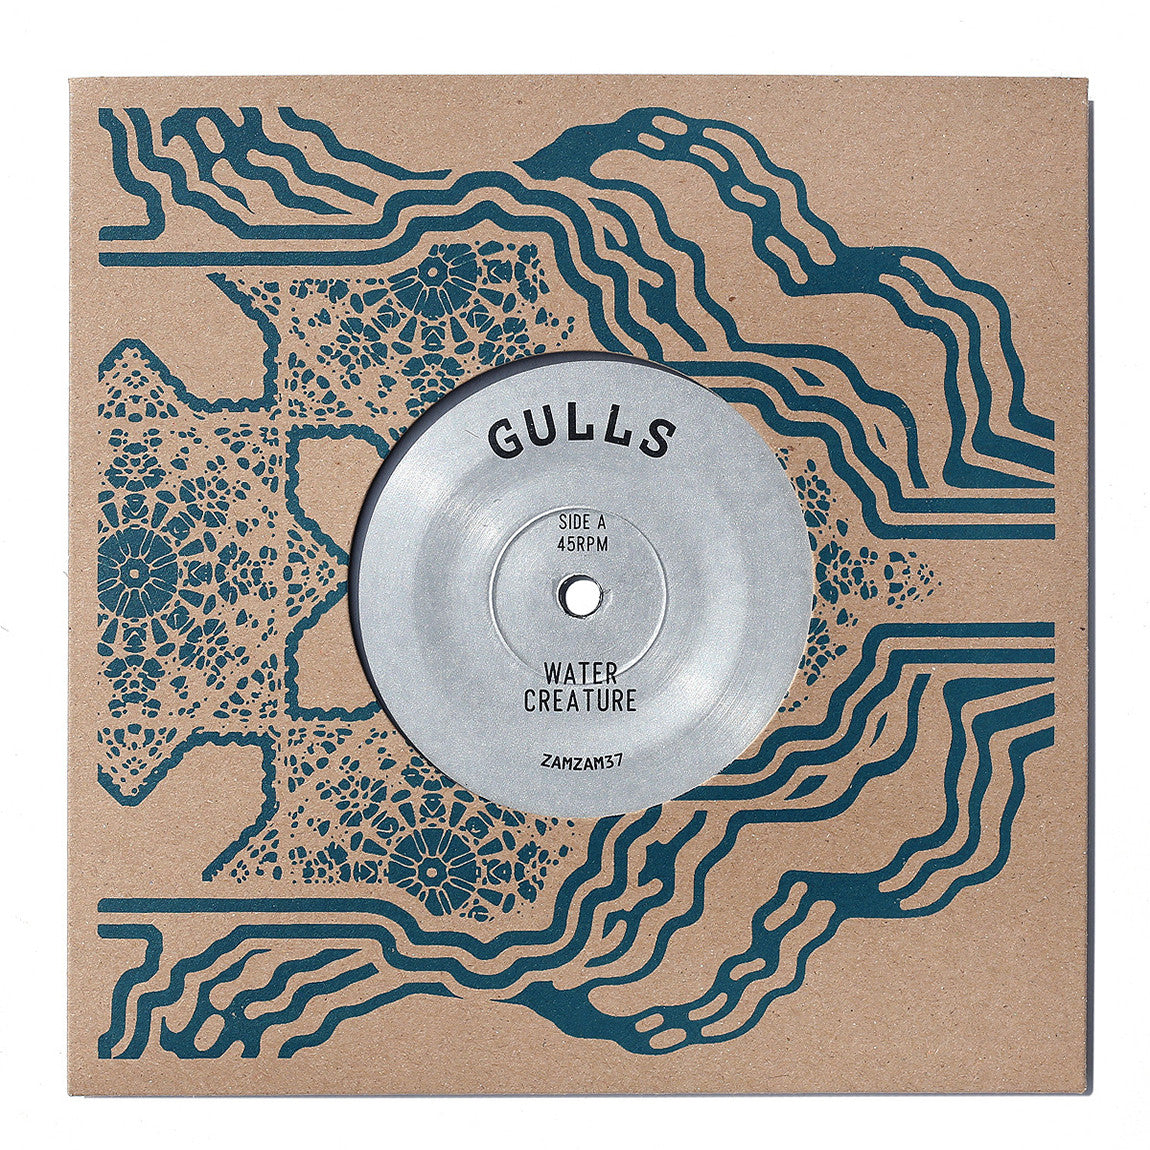 Gulls - Water Creature / Gulls Rhythm Force - Unearthed Sounds